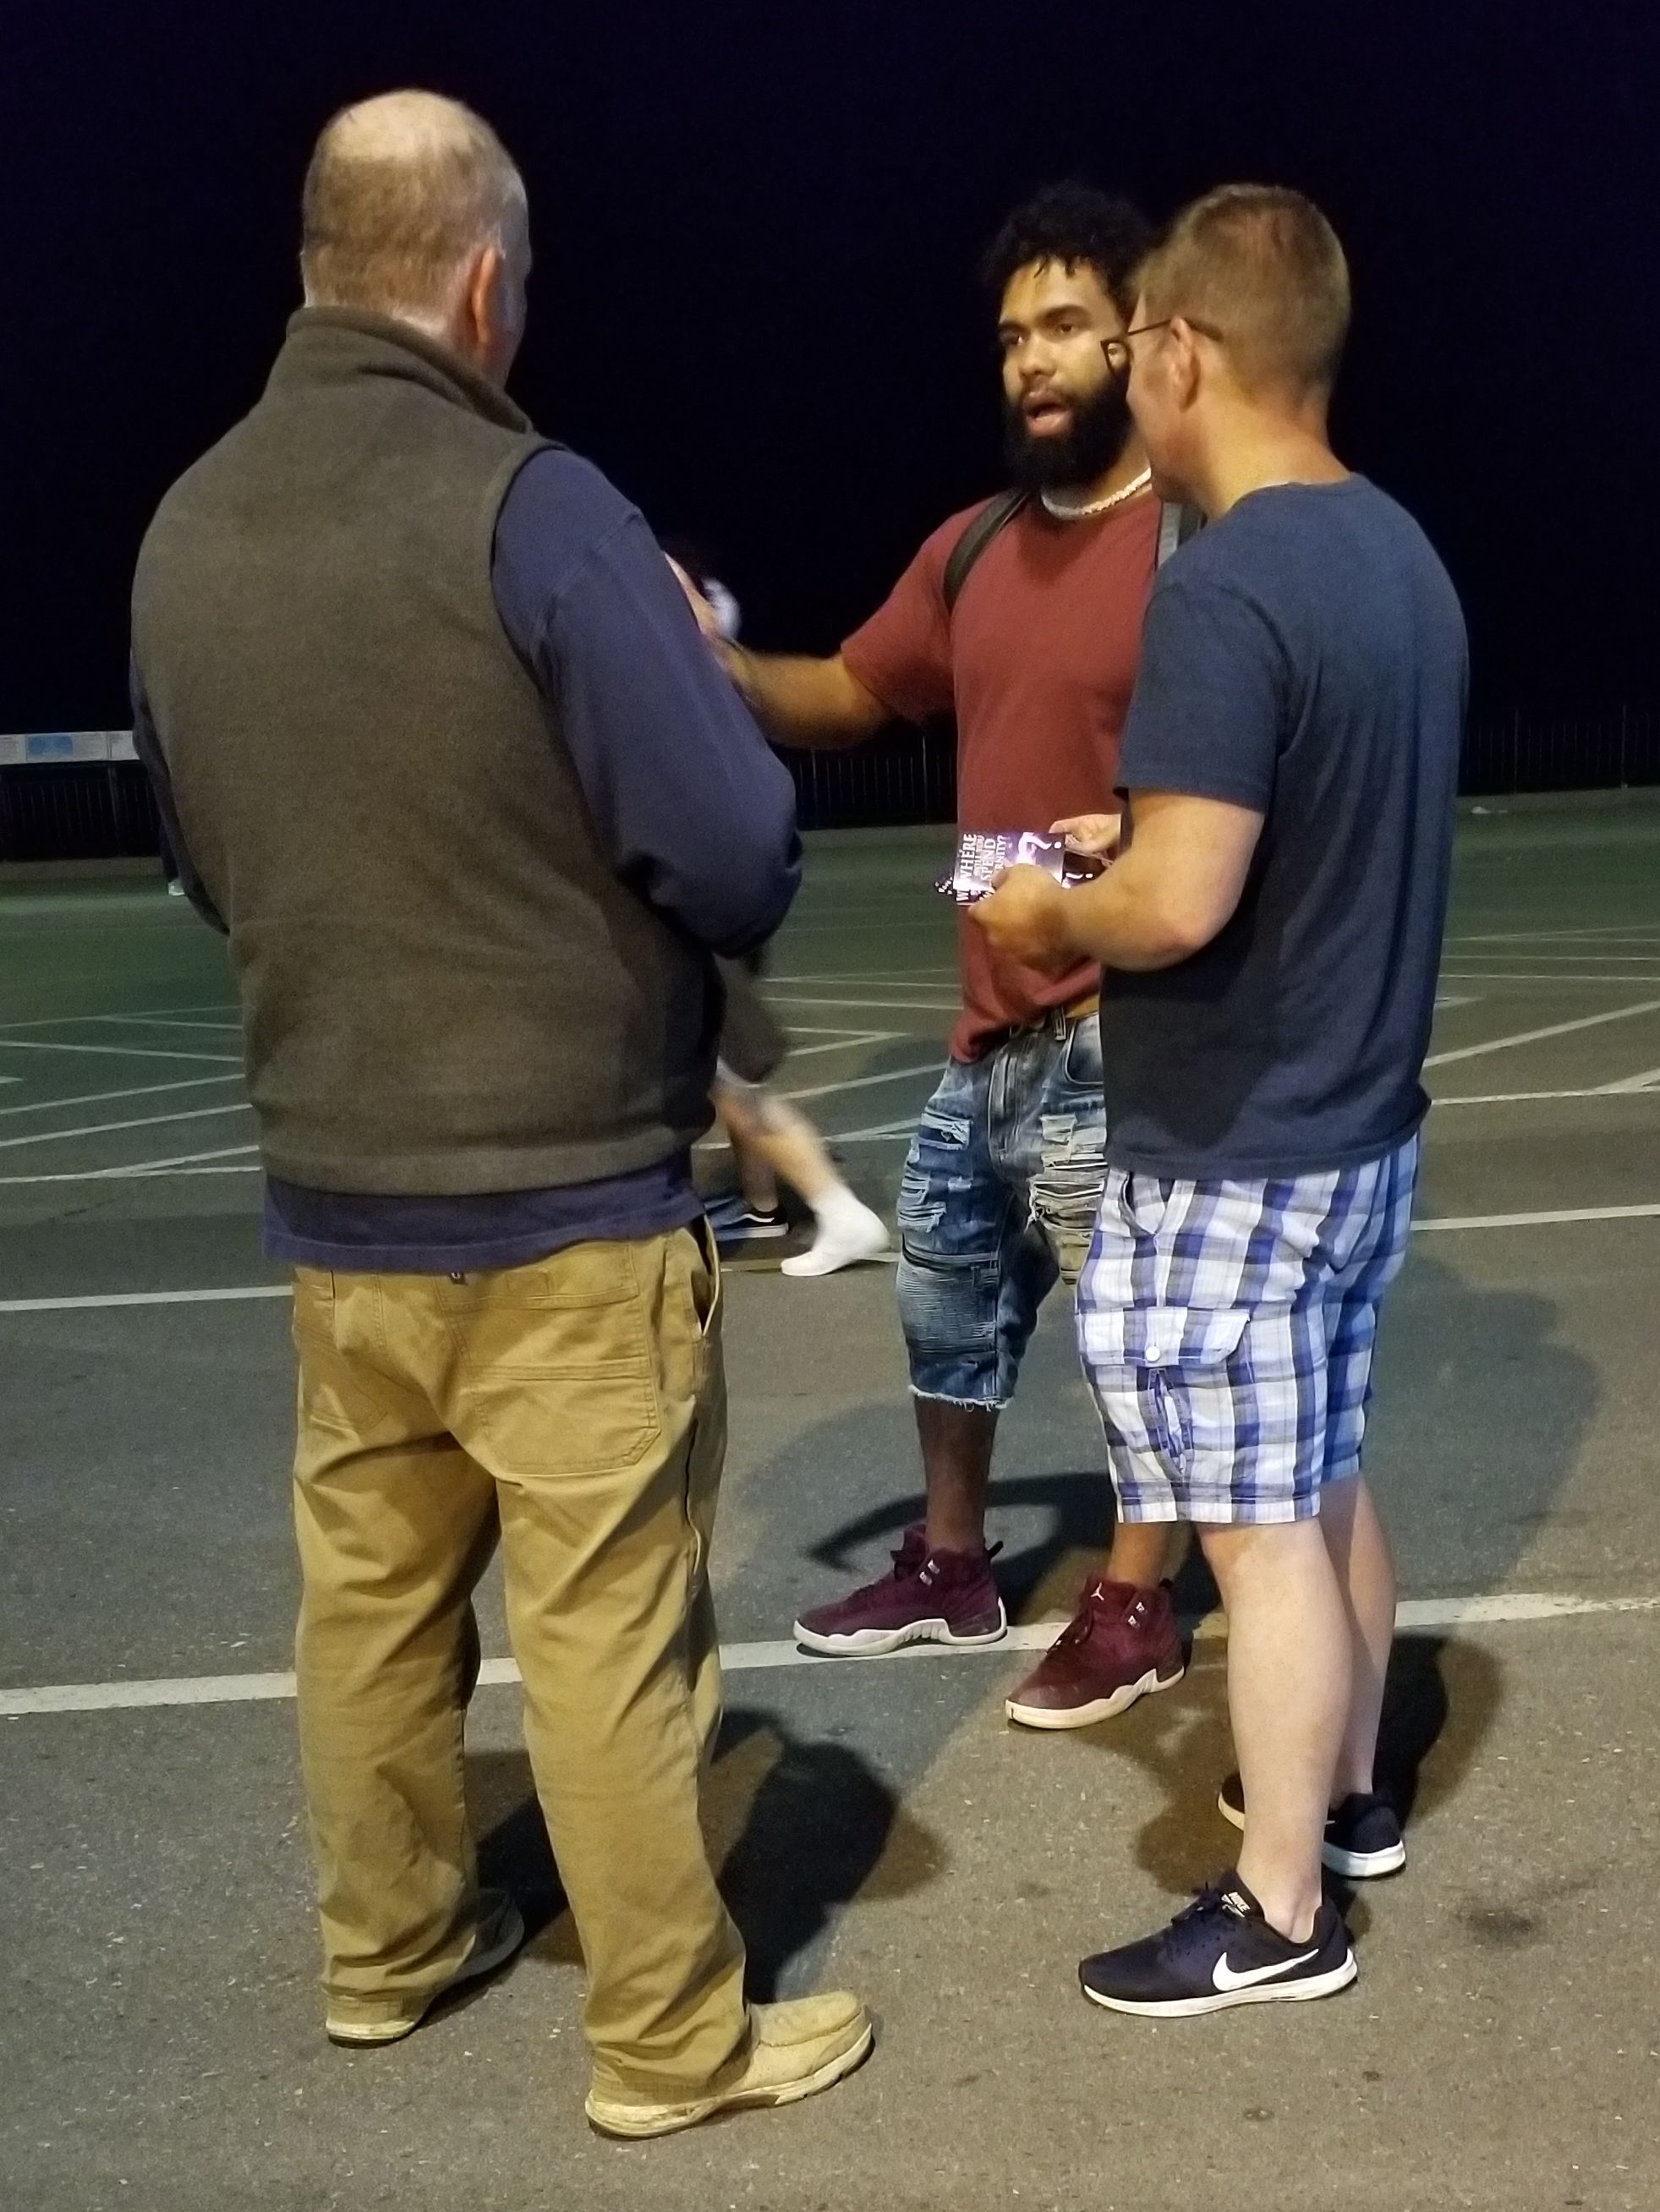 This is Ishmael, and he had a looooot of questions. Chip and John had a very long discussion with him.   But this is cool: a local Pastor overheard what was going on and joined in. The three of them prayed over Ismael for God to reveal himself to him.